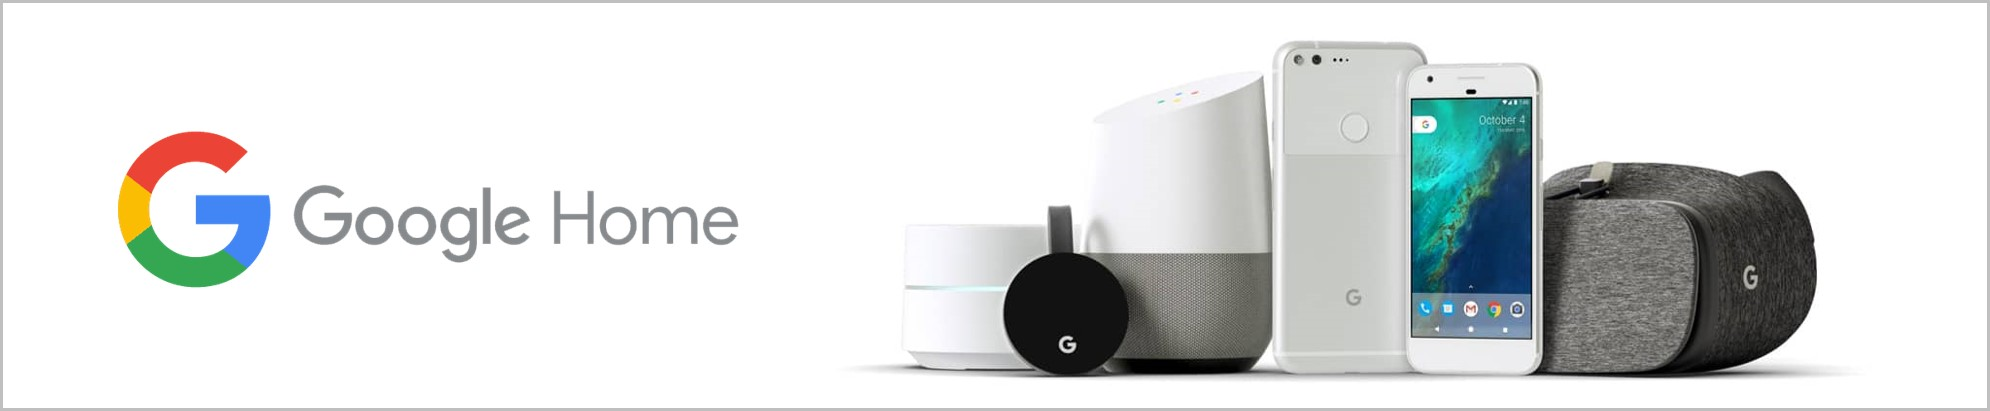 Google Home Product banner